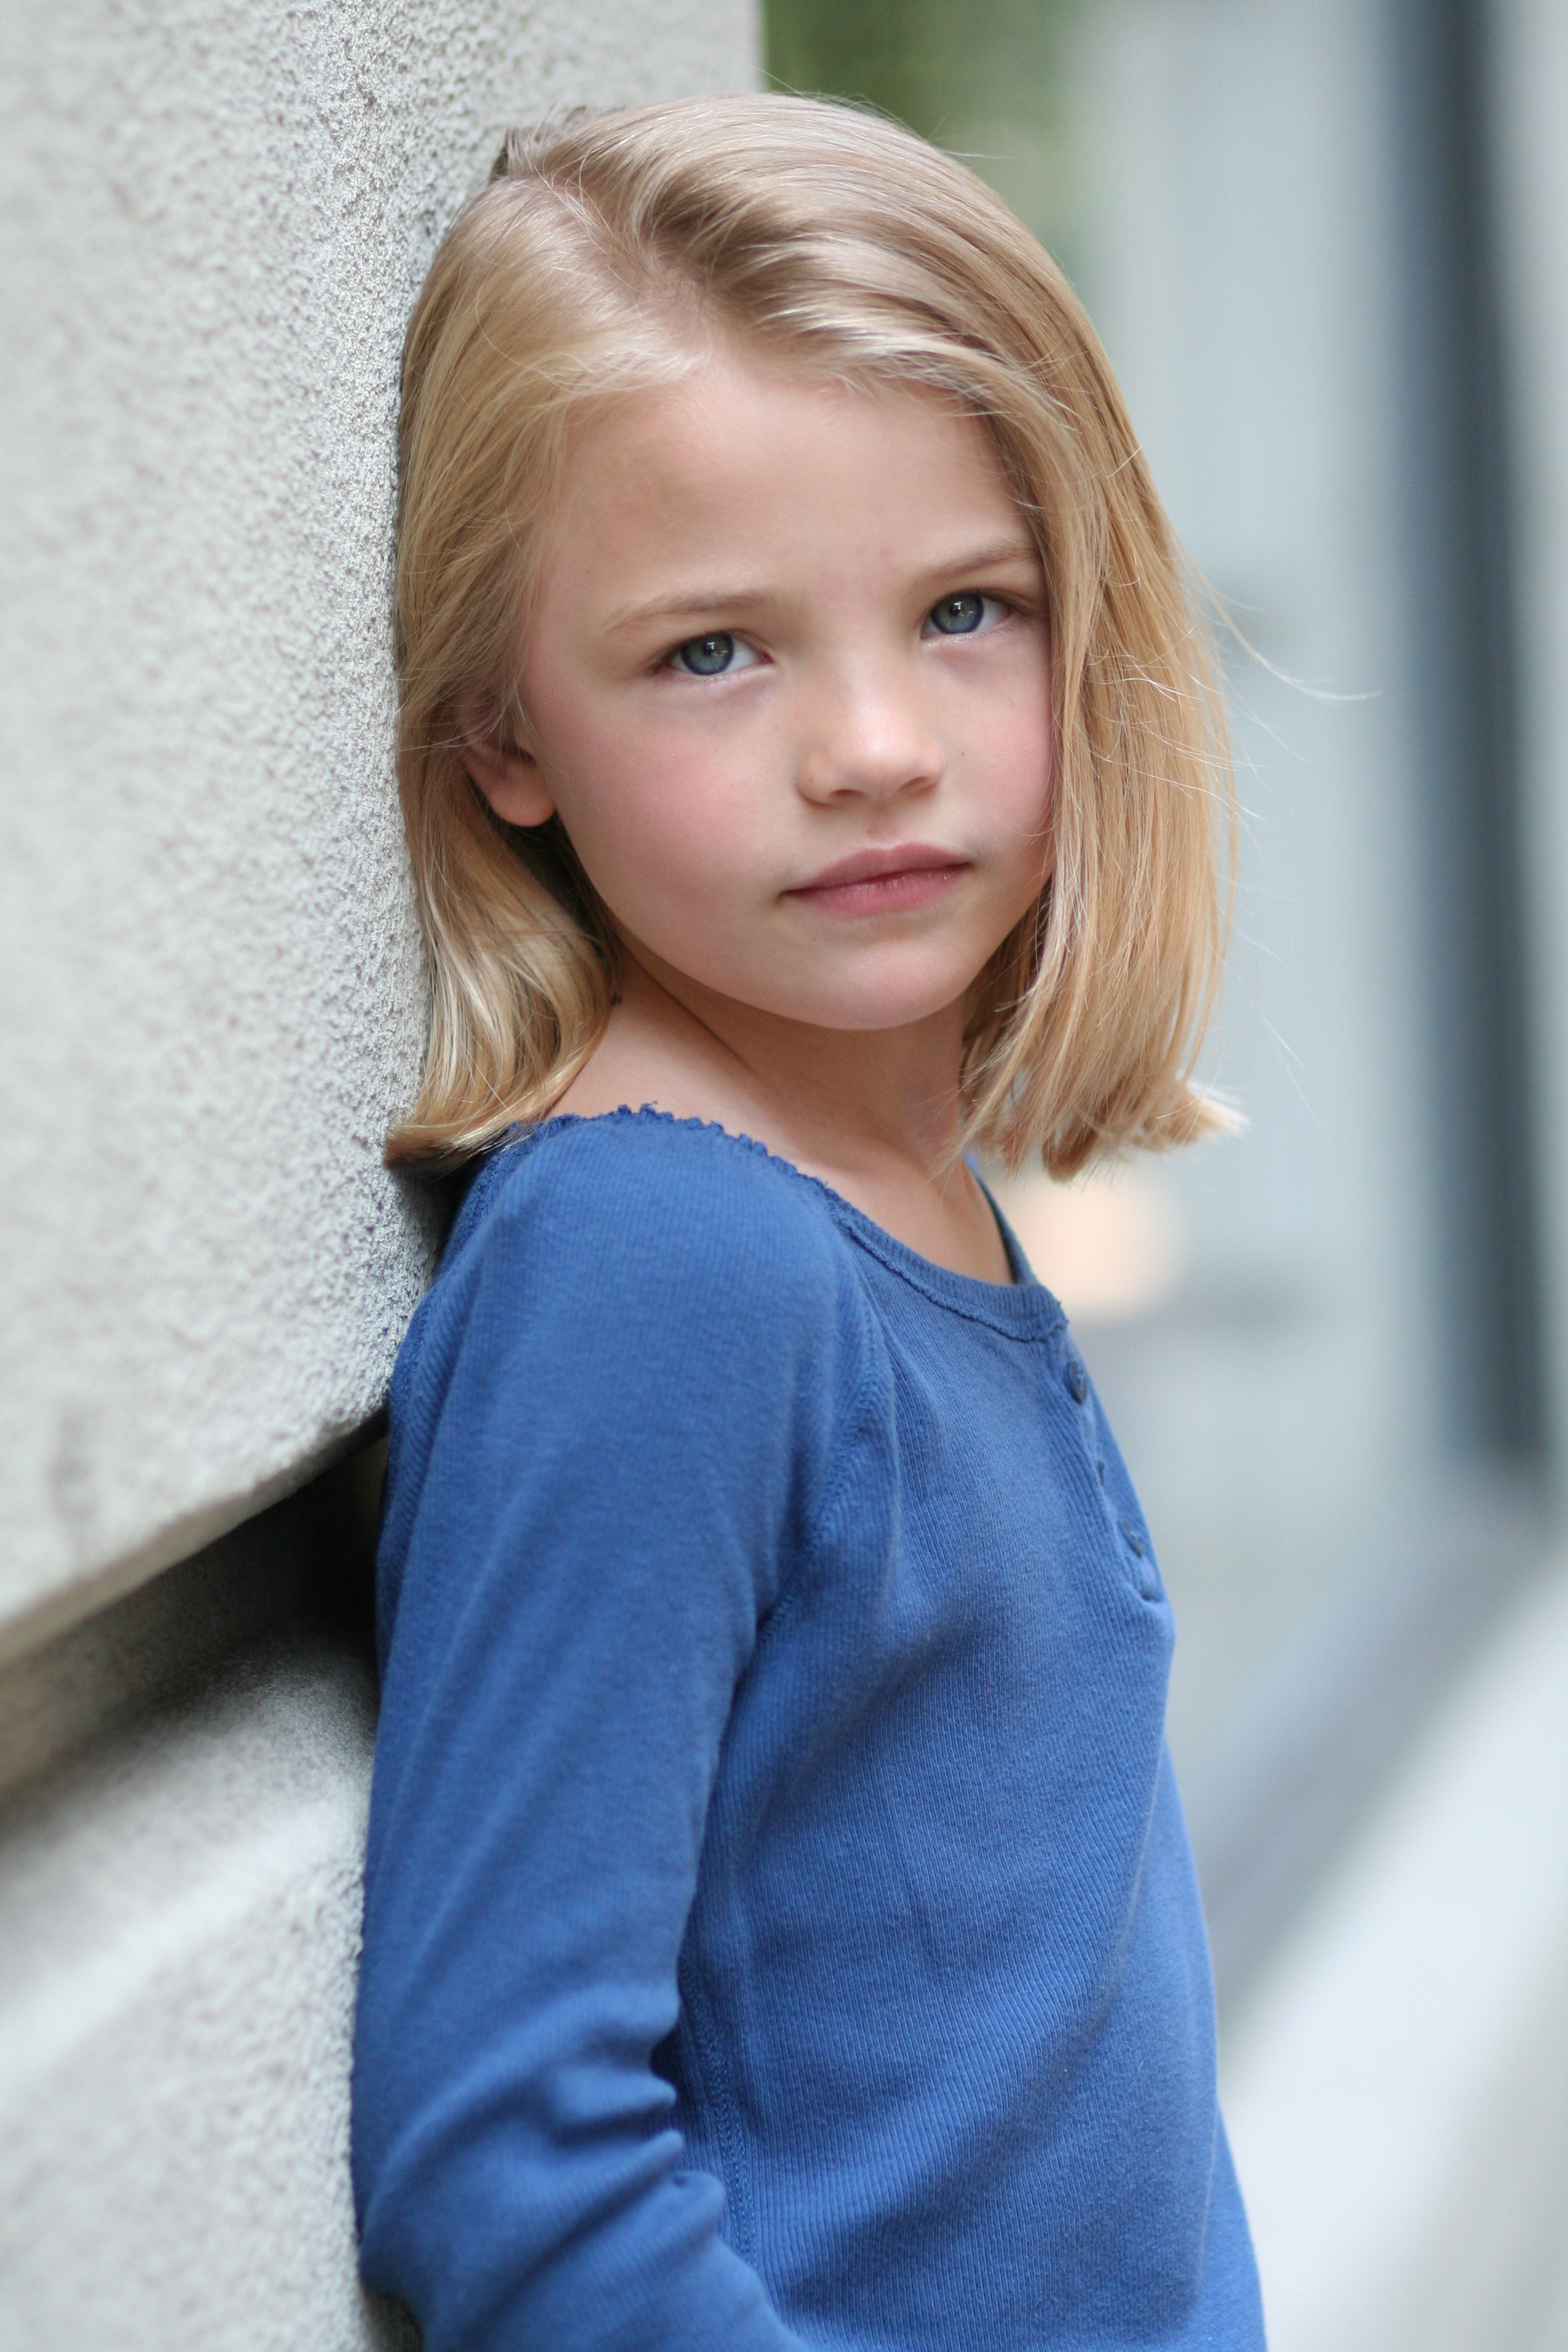 http en wikipedia org wiki child model dbpedia morgan lily dbpedia